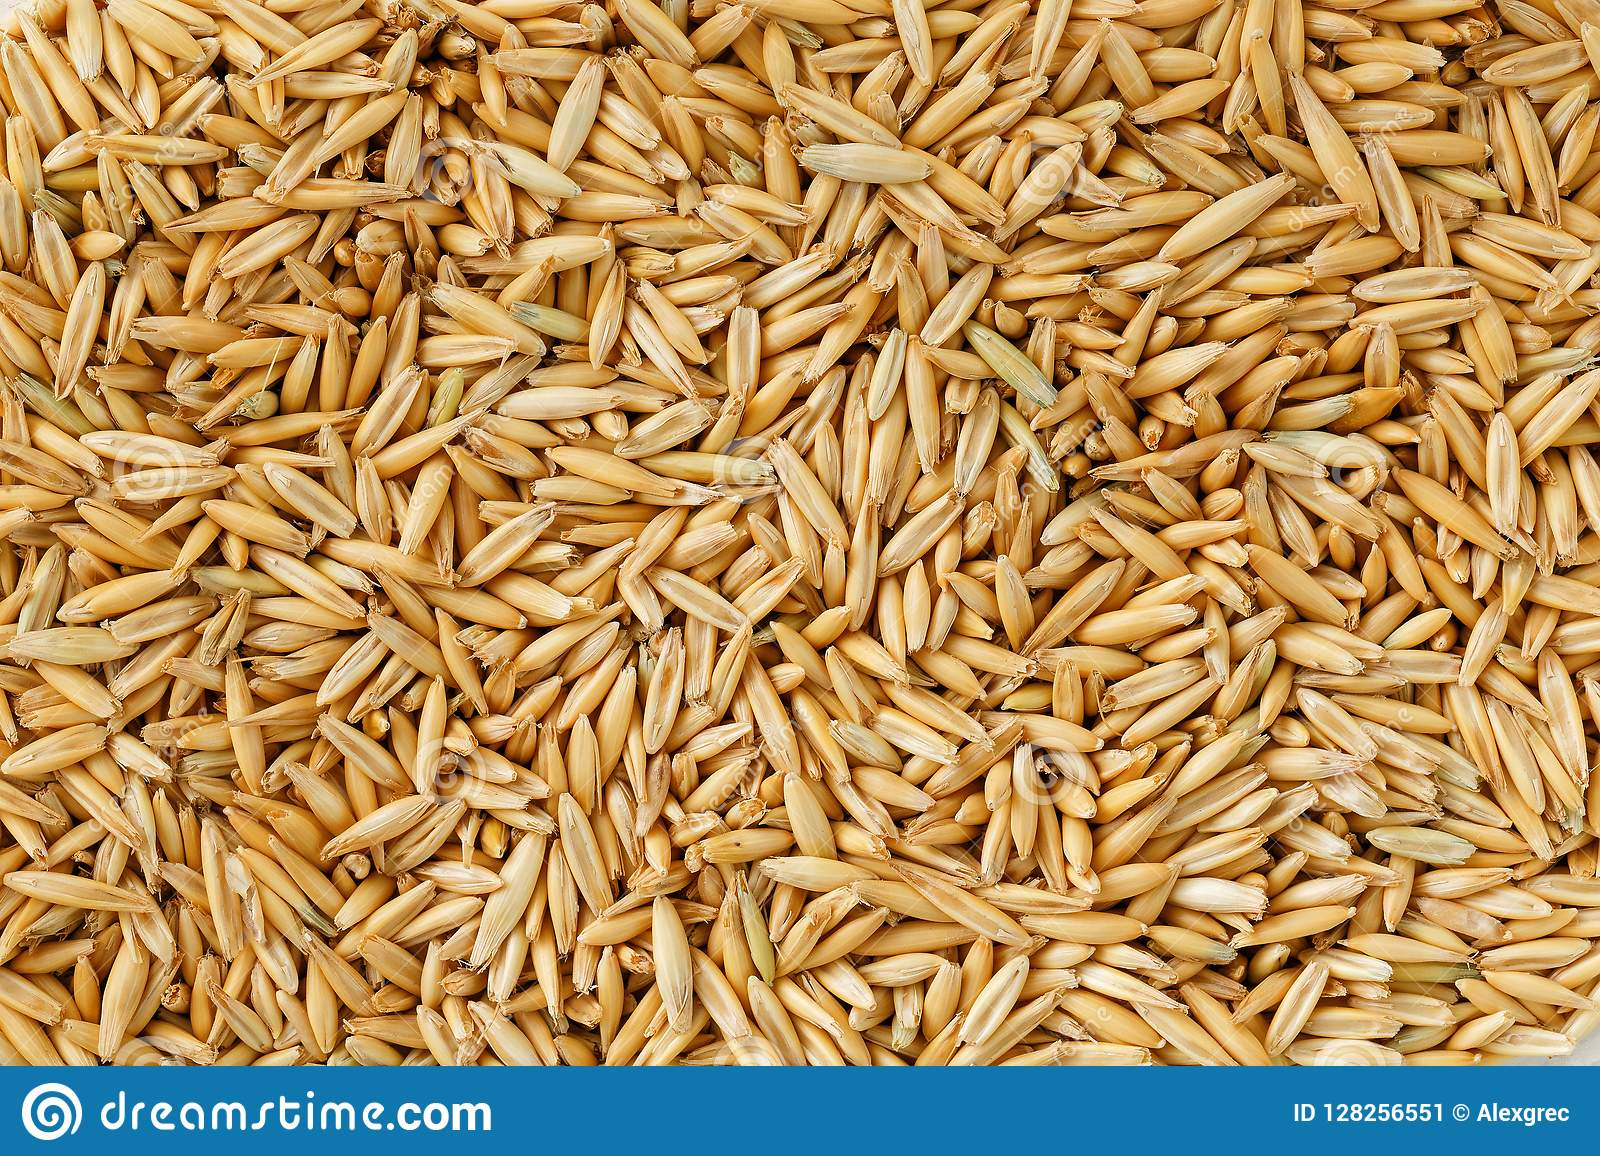 hight resolution of natural oat grains background close up gold grain